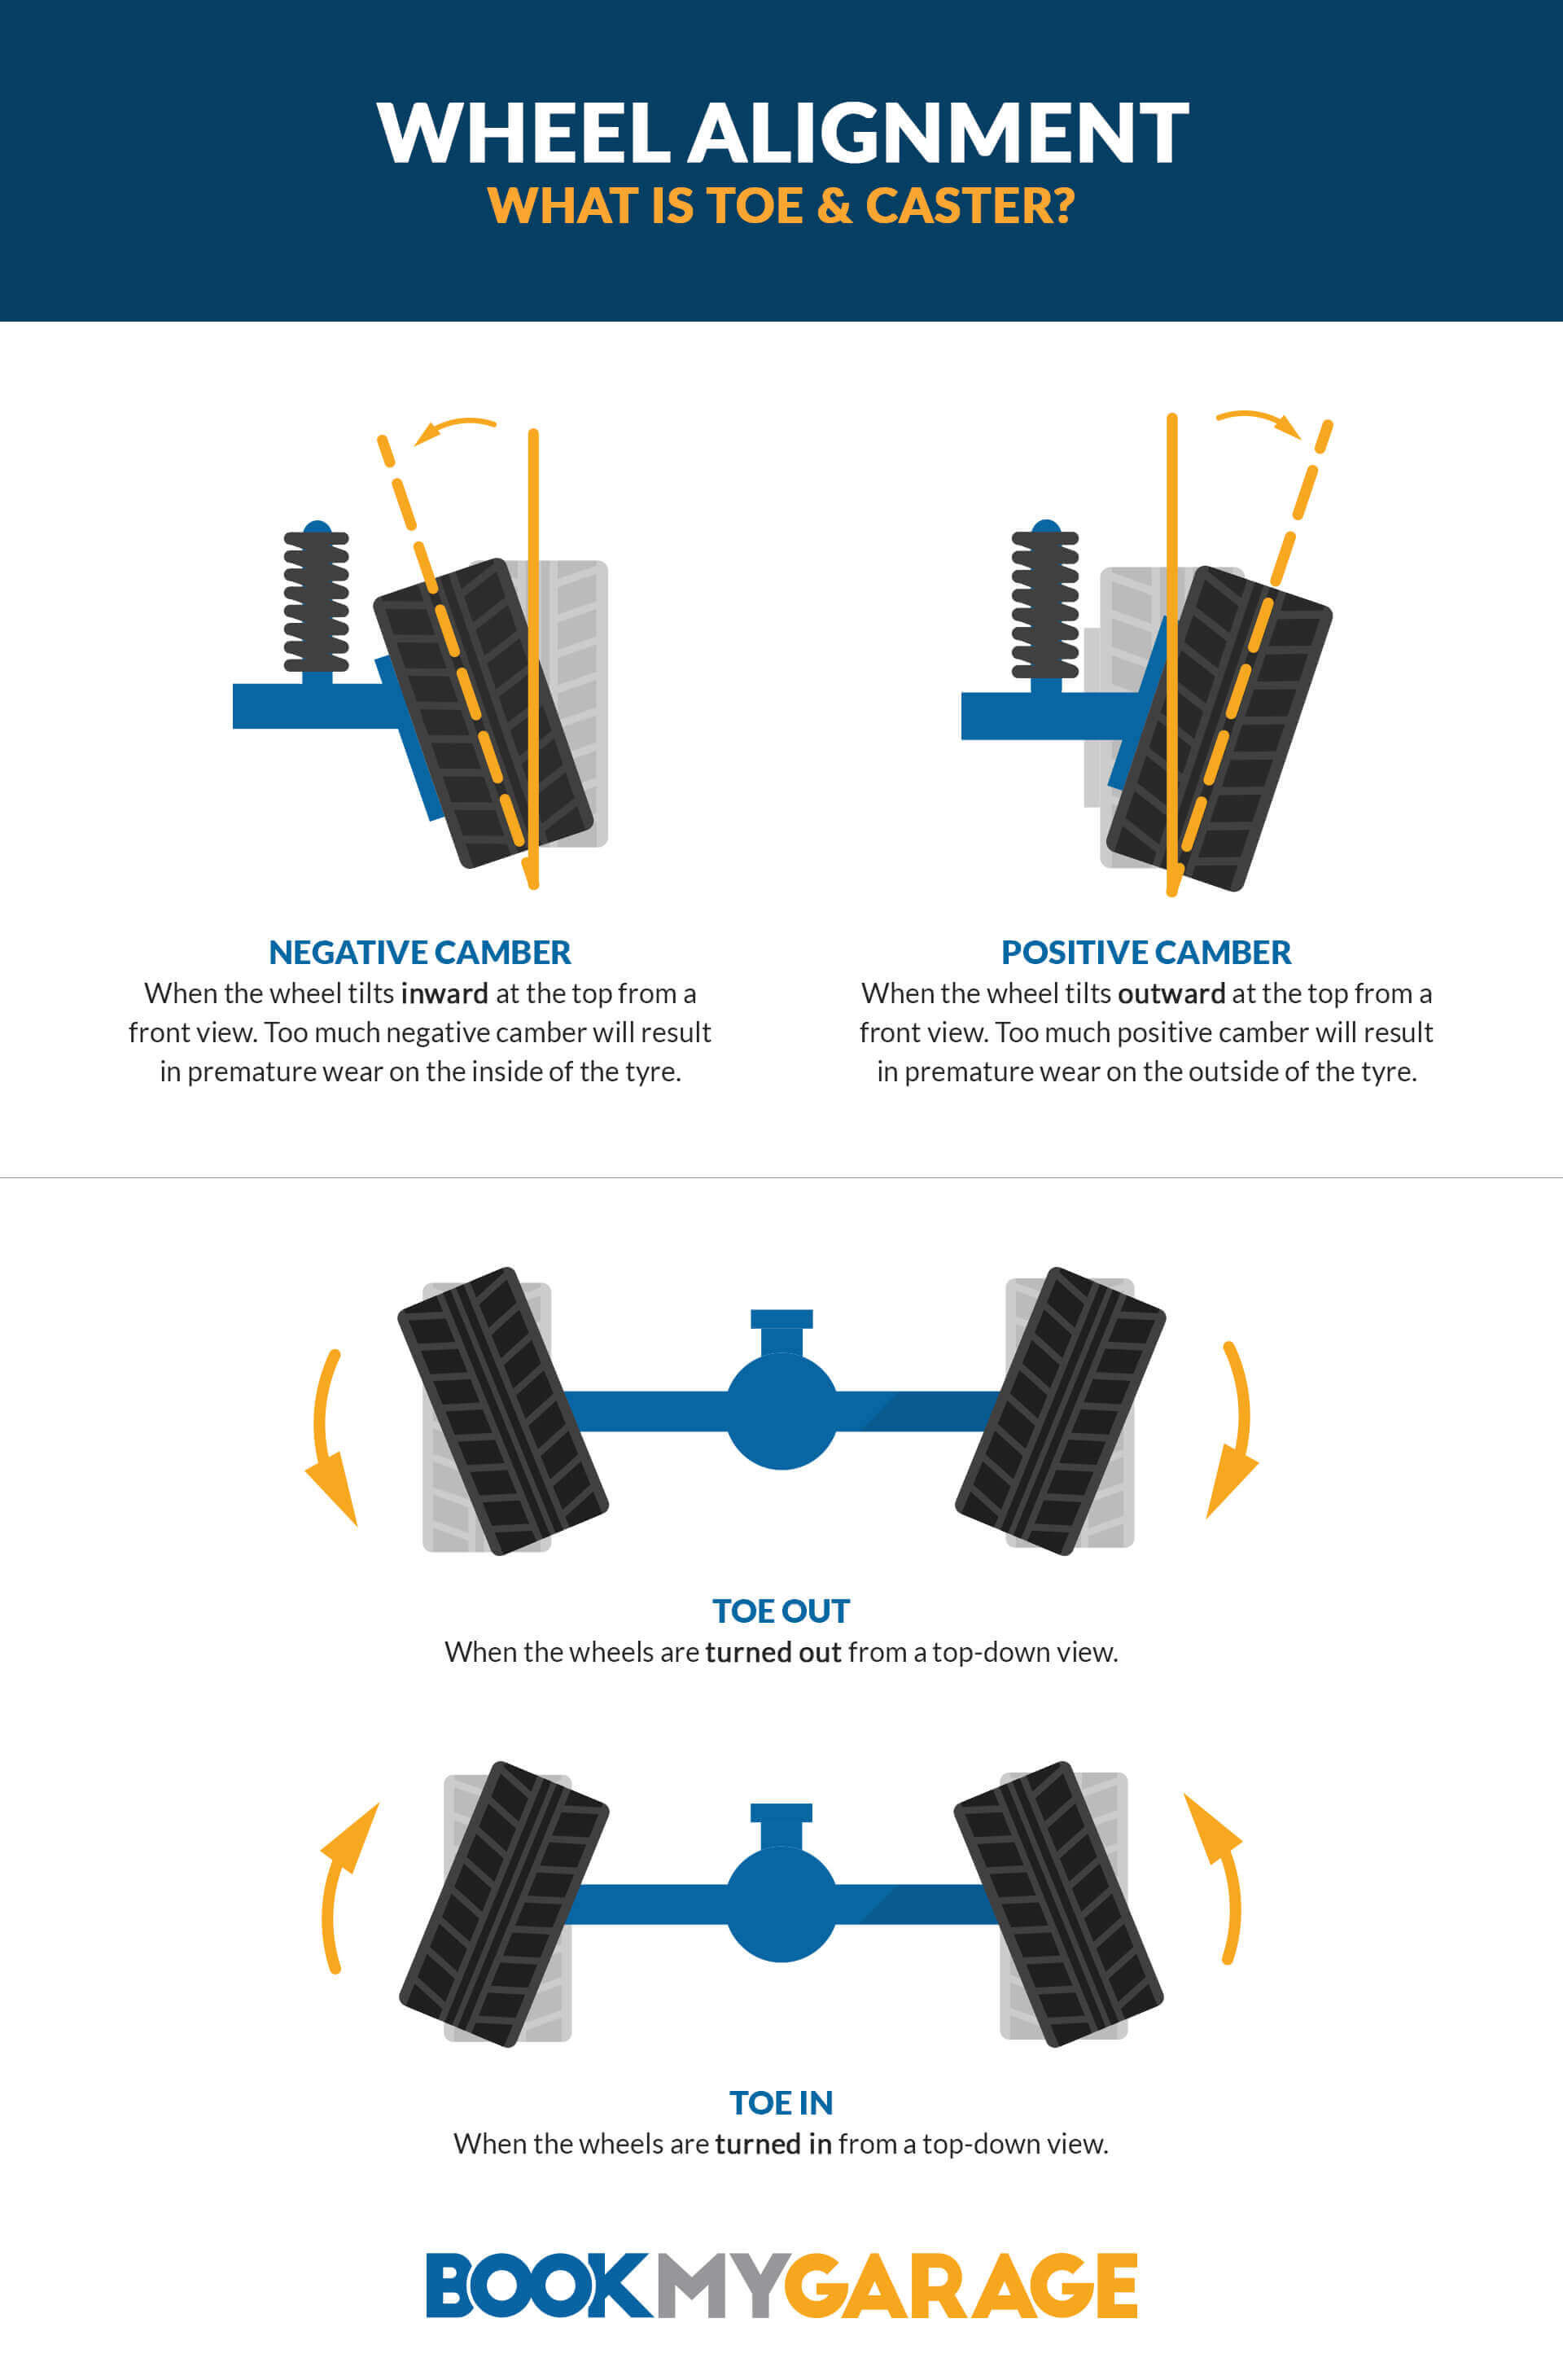 BookMyGarage wheel alignment infographic showing negative camber (where the wheel points inward), positive camber (where the wheel points outward), toe out (where the tyres are turned out away from the chassis) and toe in (where the tyres are turned in towards the chassis)